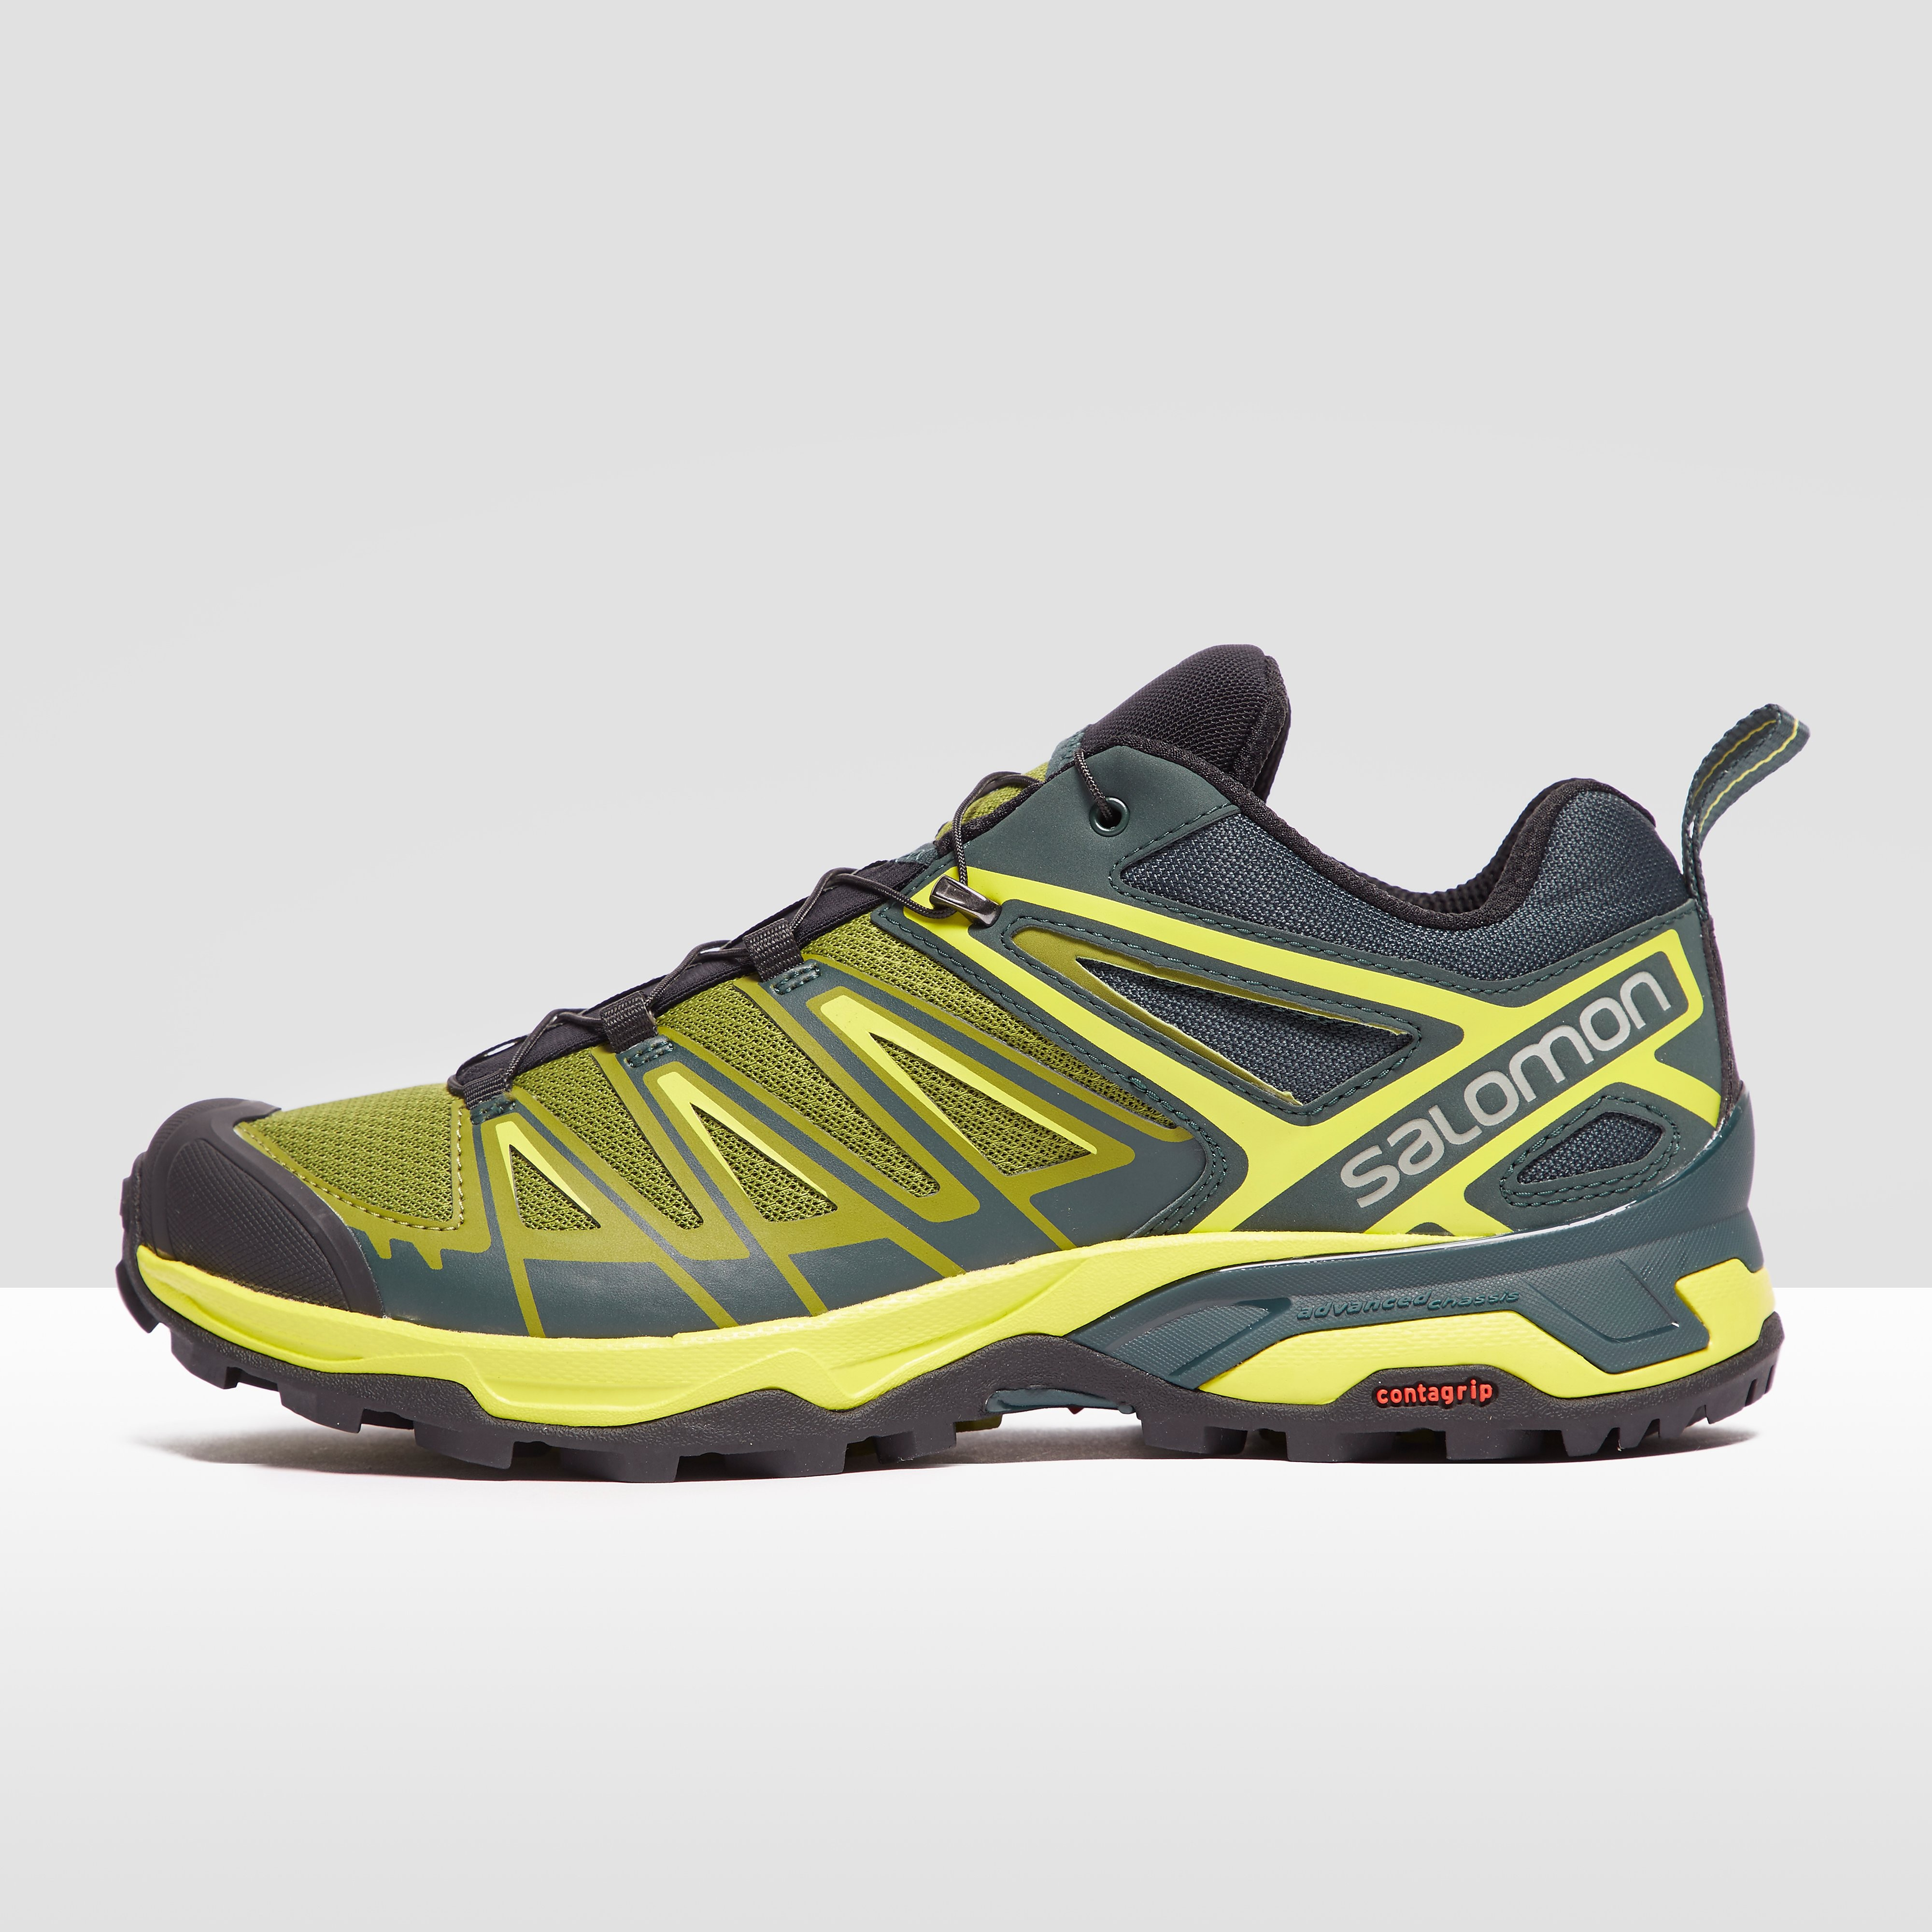 Salomon X Ultra 3 Men's Hiking Shoes